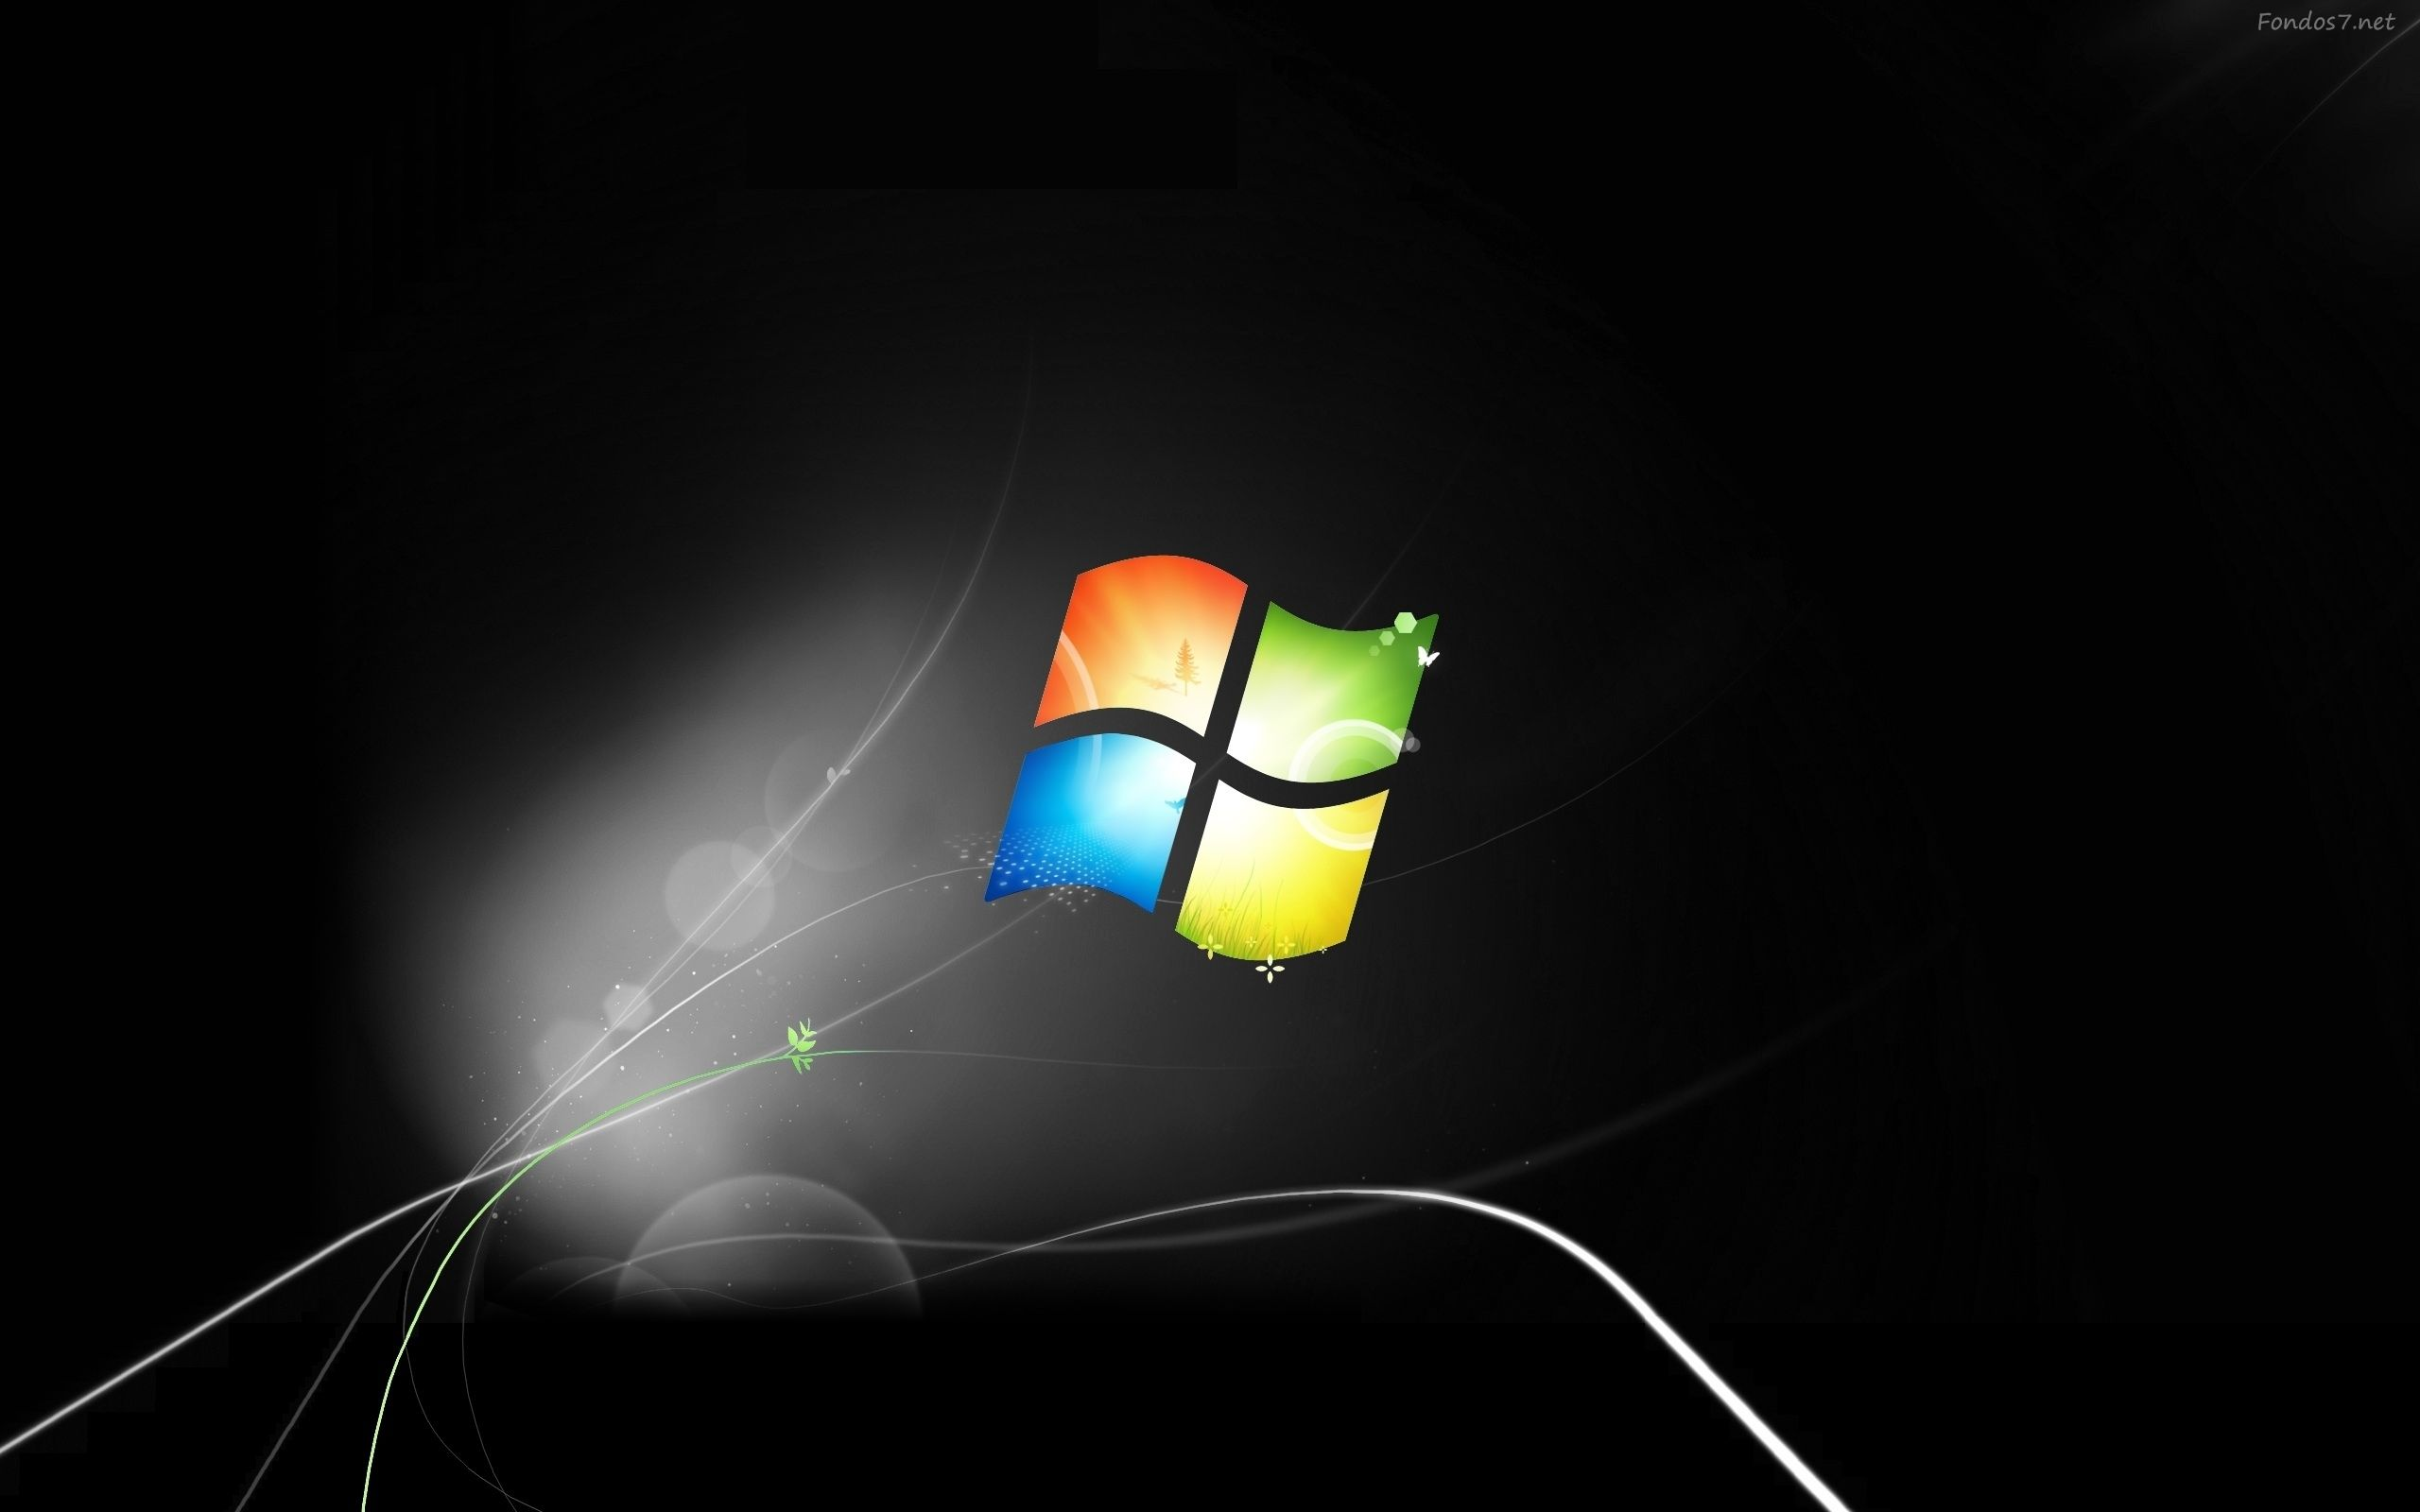 Windows 7 Wallpaper Dark